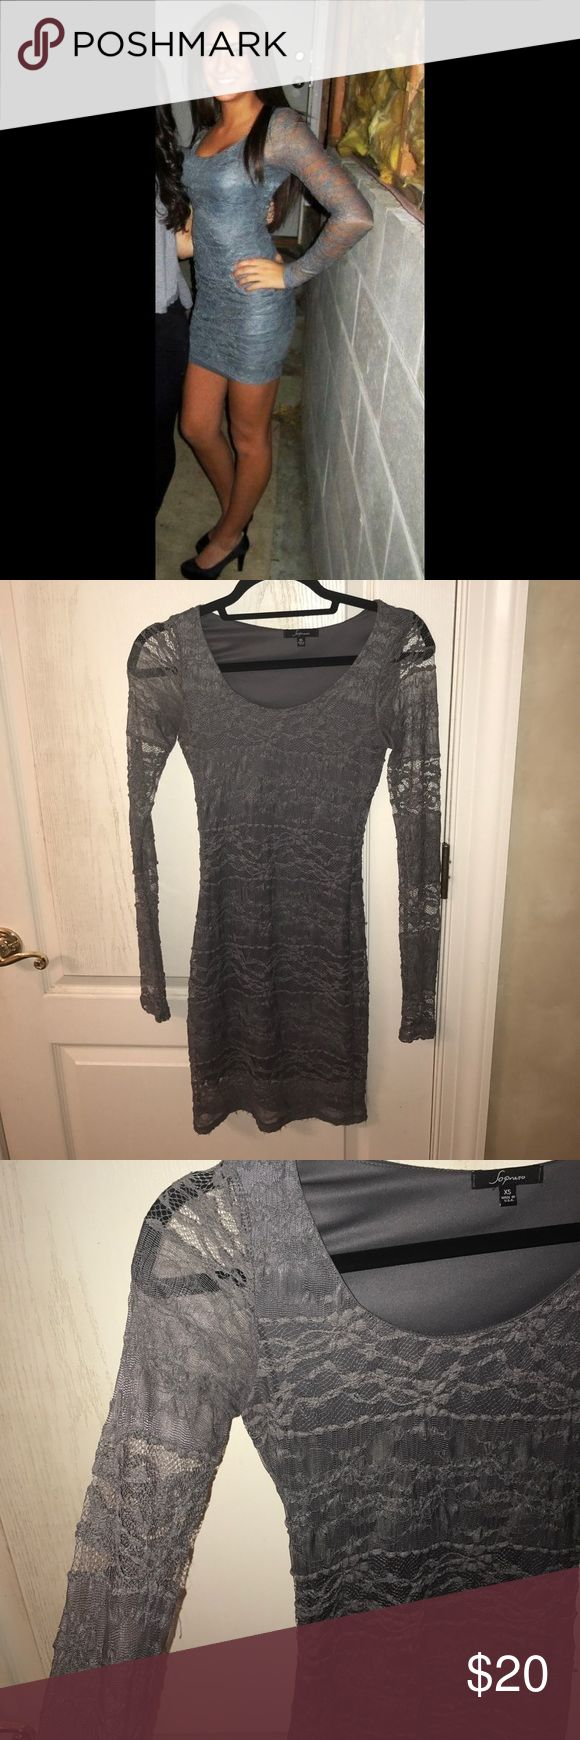 Lace Grey Long Sleeve Dress! This dress is perfect for any occasion. The sleeves are all lace. It is formfitting. No rips or stains. Looks brand new. Let me know if you have any other questions! Soprano Dresses Long Sleeve